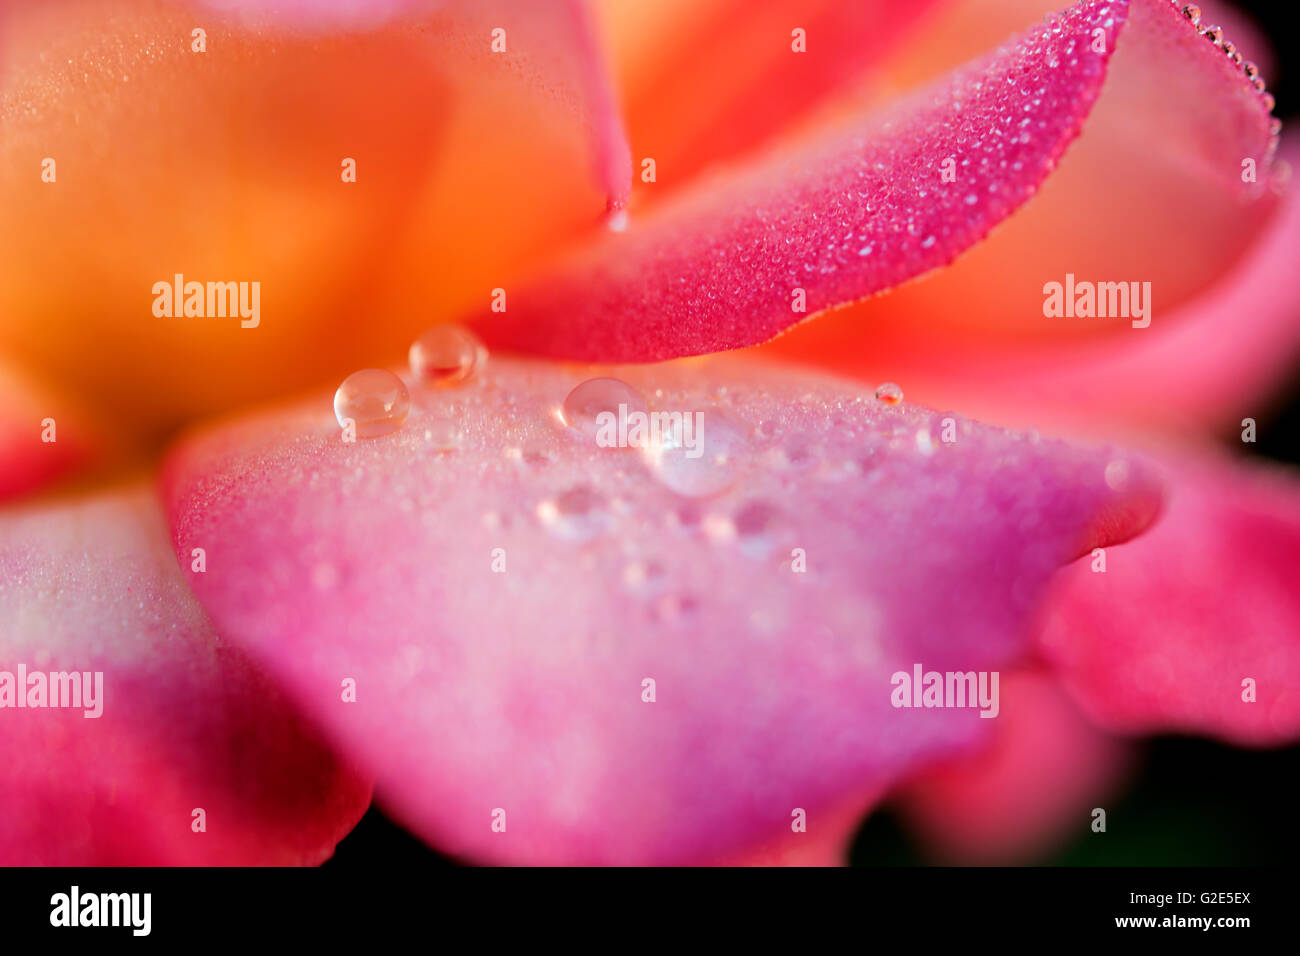 magenta and orange rose with dew drops - Stock Image